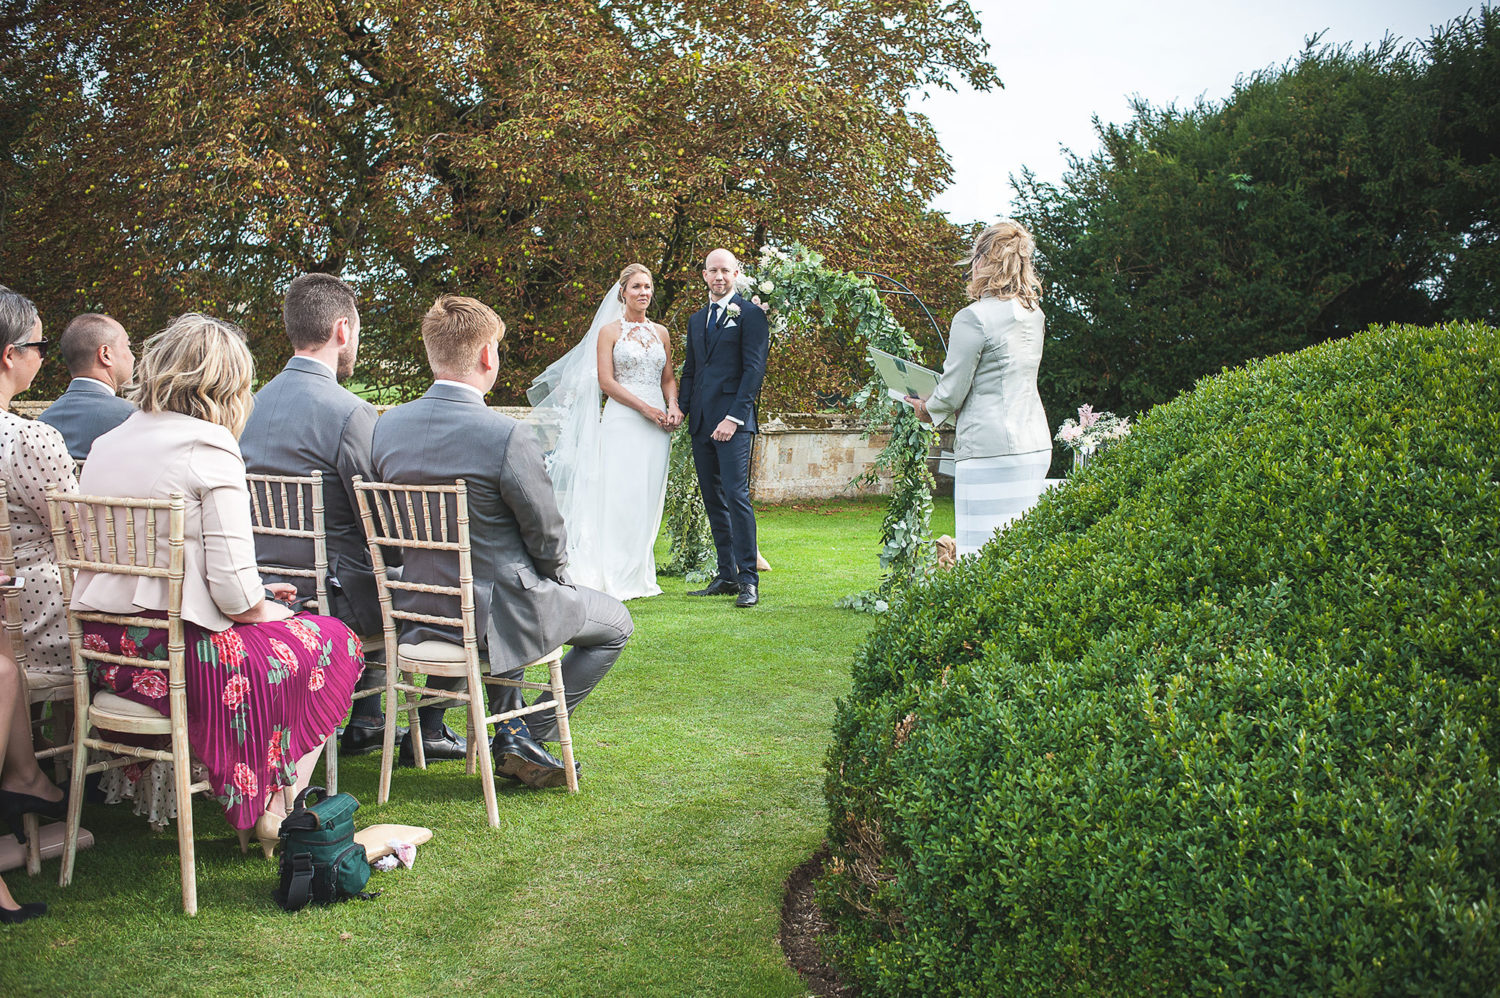 A couple stand hand-in-hand on a lawn in front of seated guests